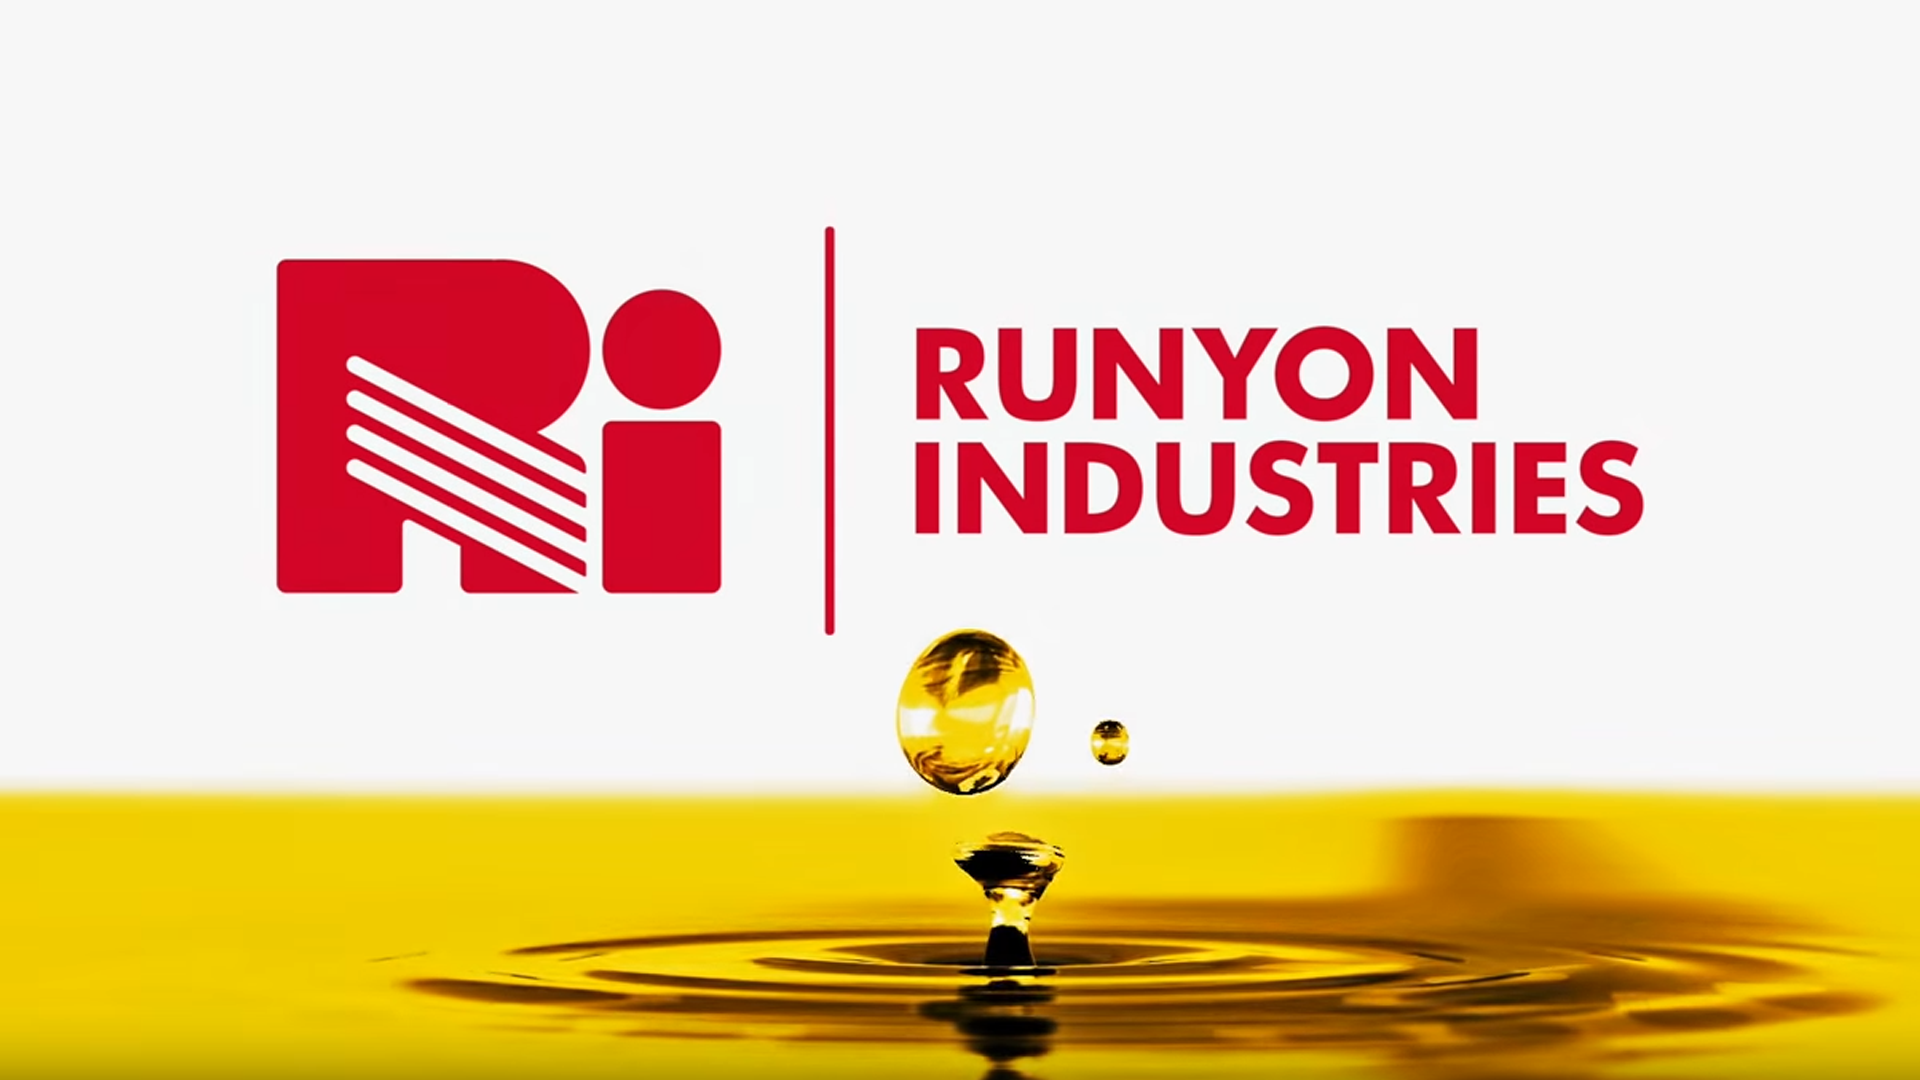 Copy of Runyon-Industries_Video-Production_Dreamcapture_Memphis-TN